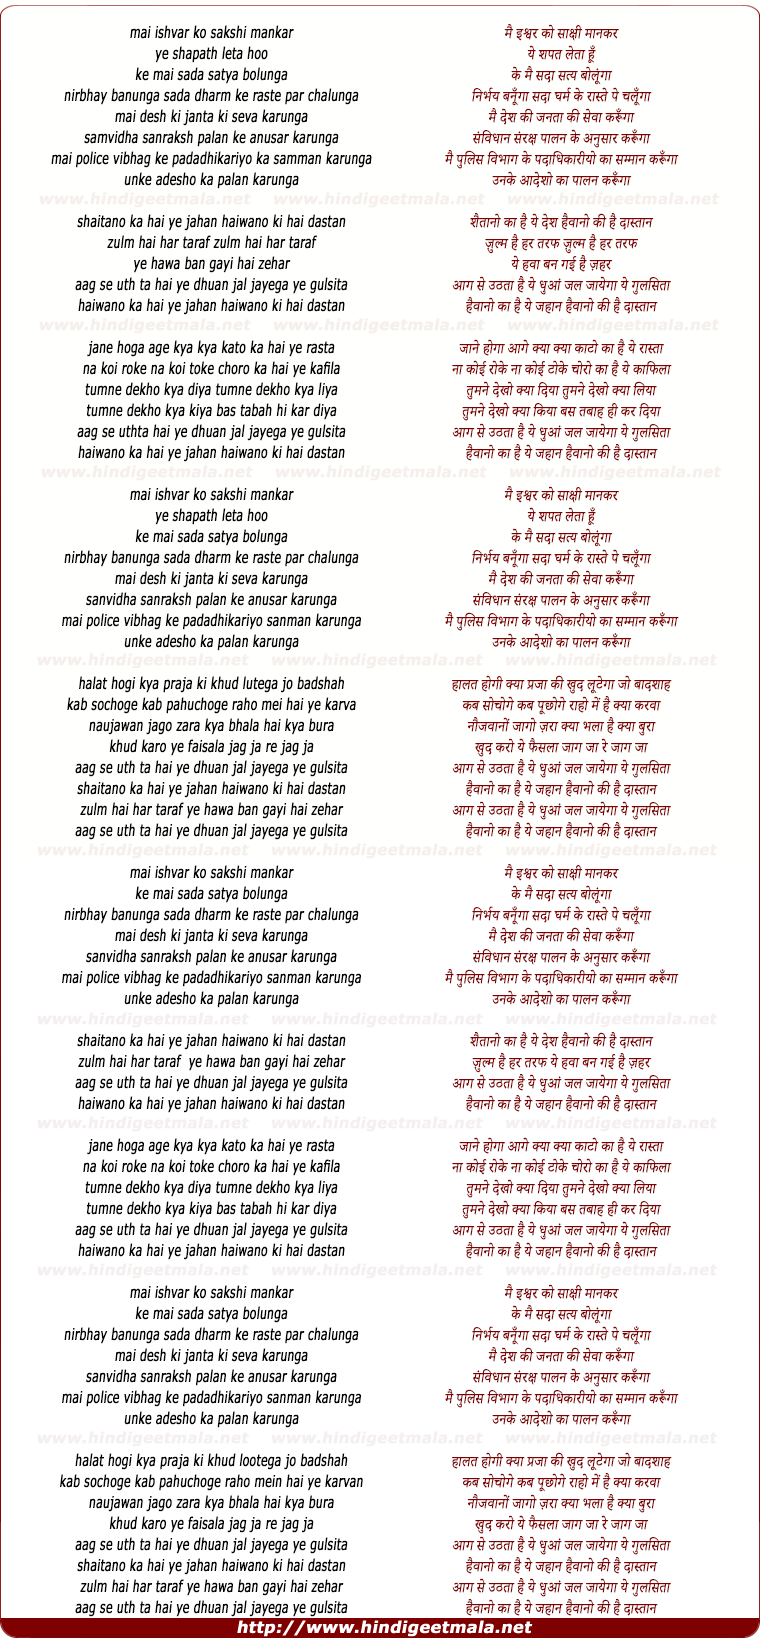 lyrics of song Shapath